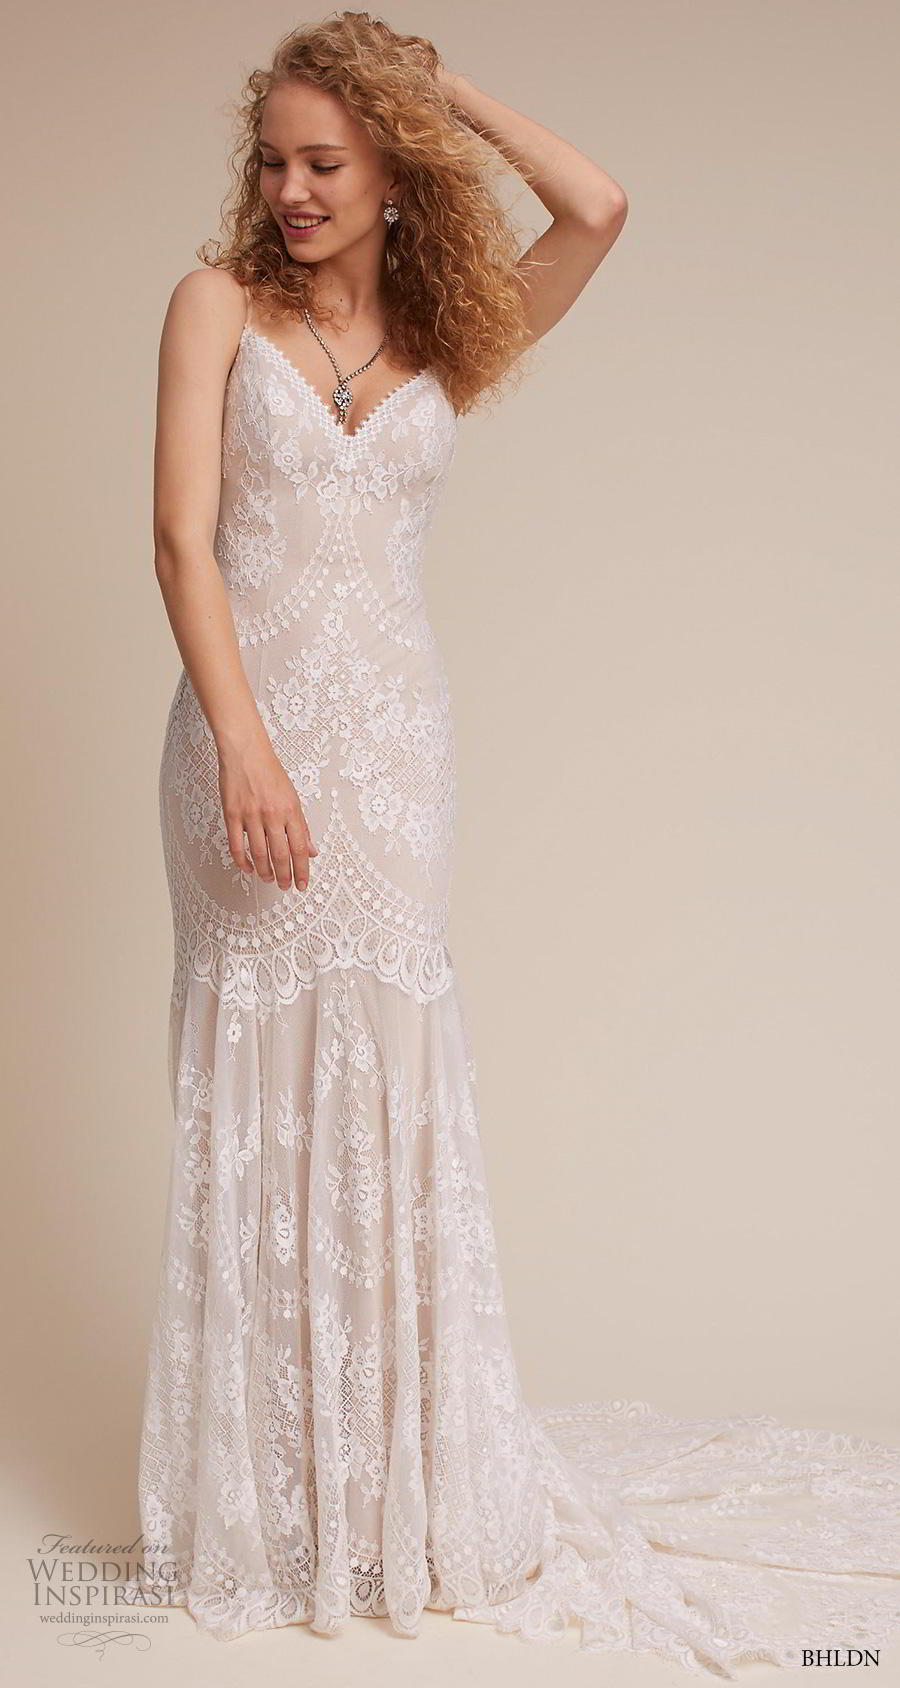 bhldn 2018 own bridal sleeveless thin strap diamond neck full embellishment bohemian vintage column sheath wedding dress mid back short train (7) mv